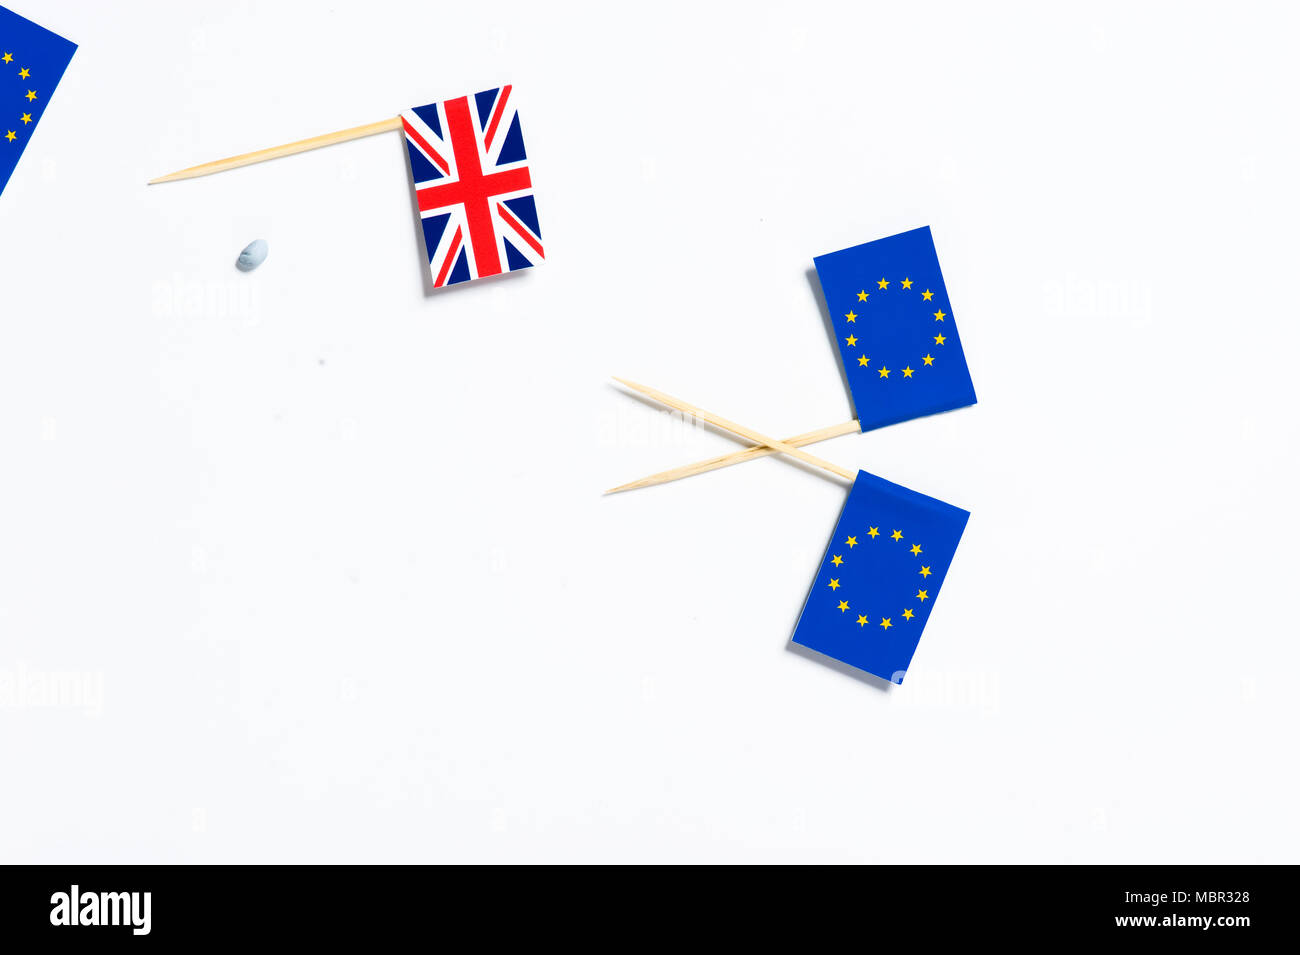 One Union Jack flag and two European Union flags on a white background Stock Photo